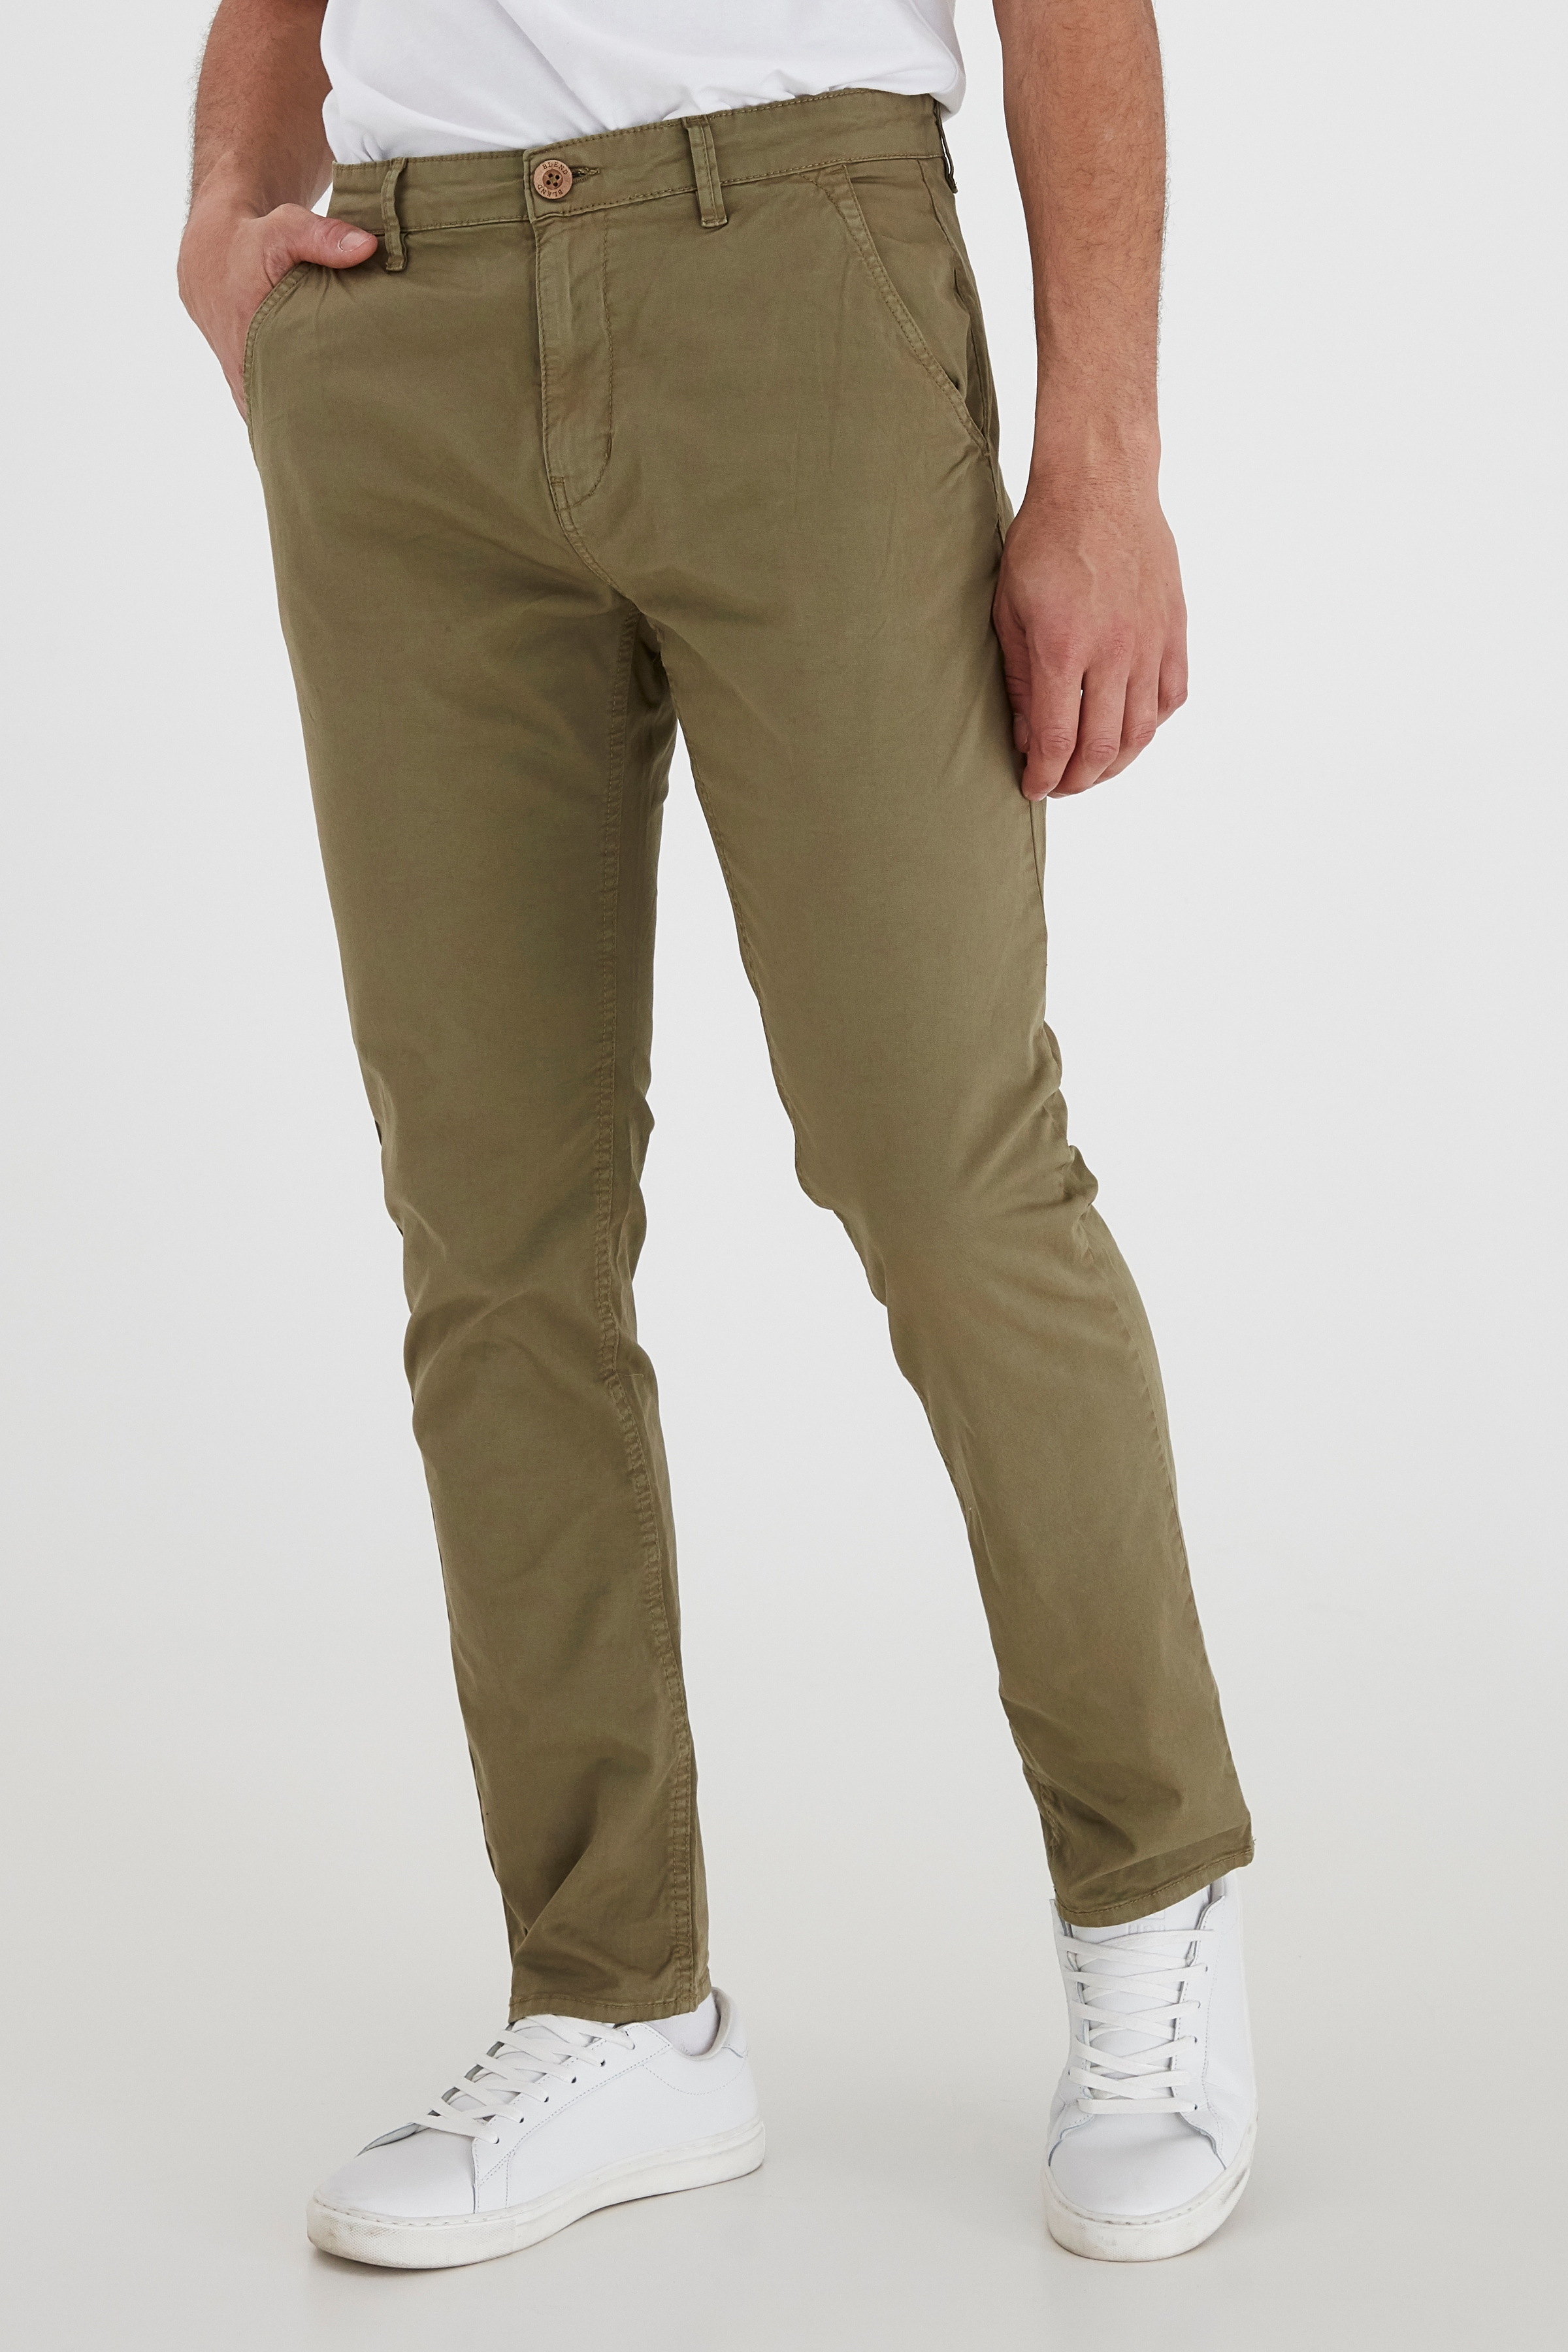 Image of Blend Chinohose »BHNIGHT Twister Modell«